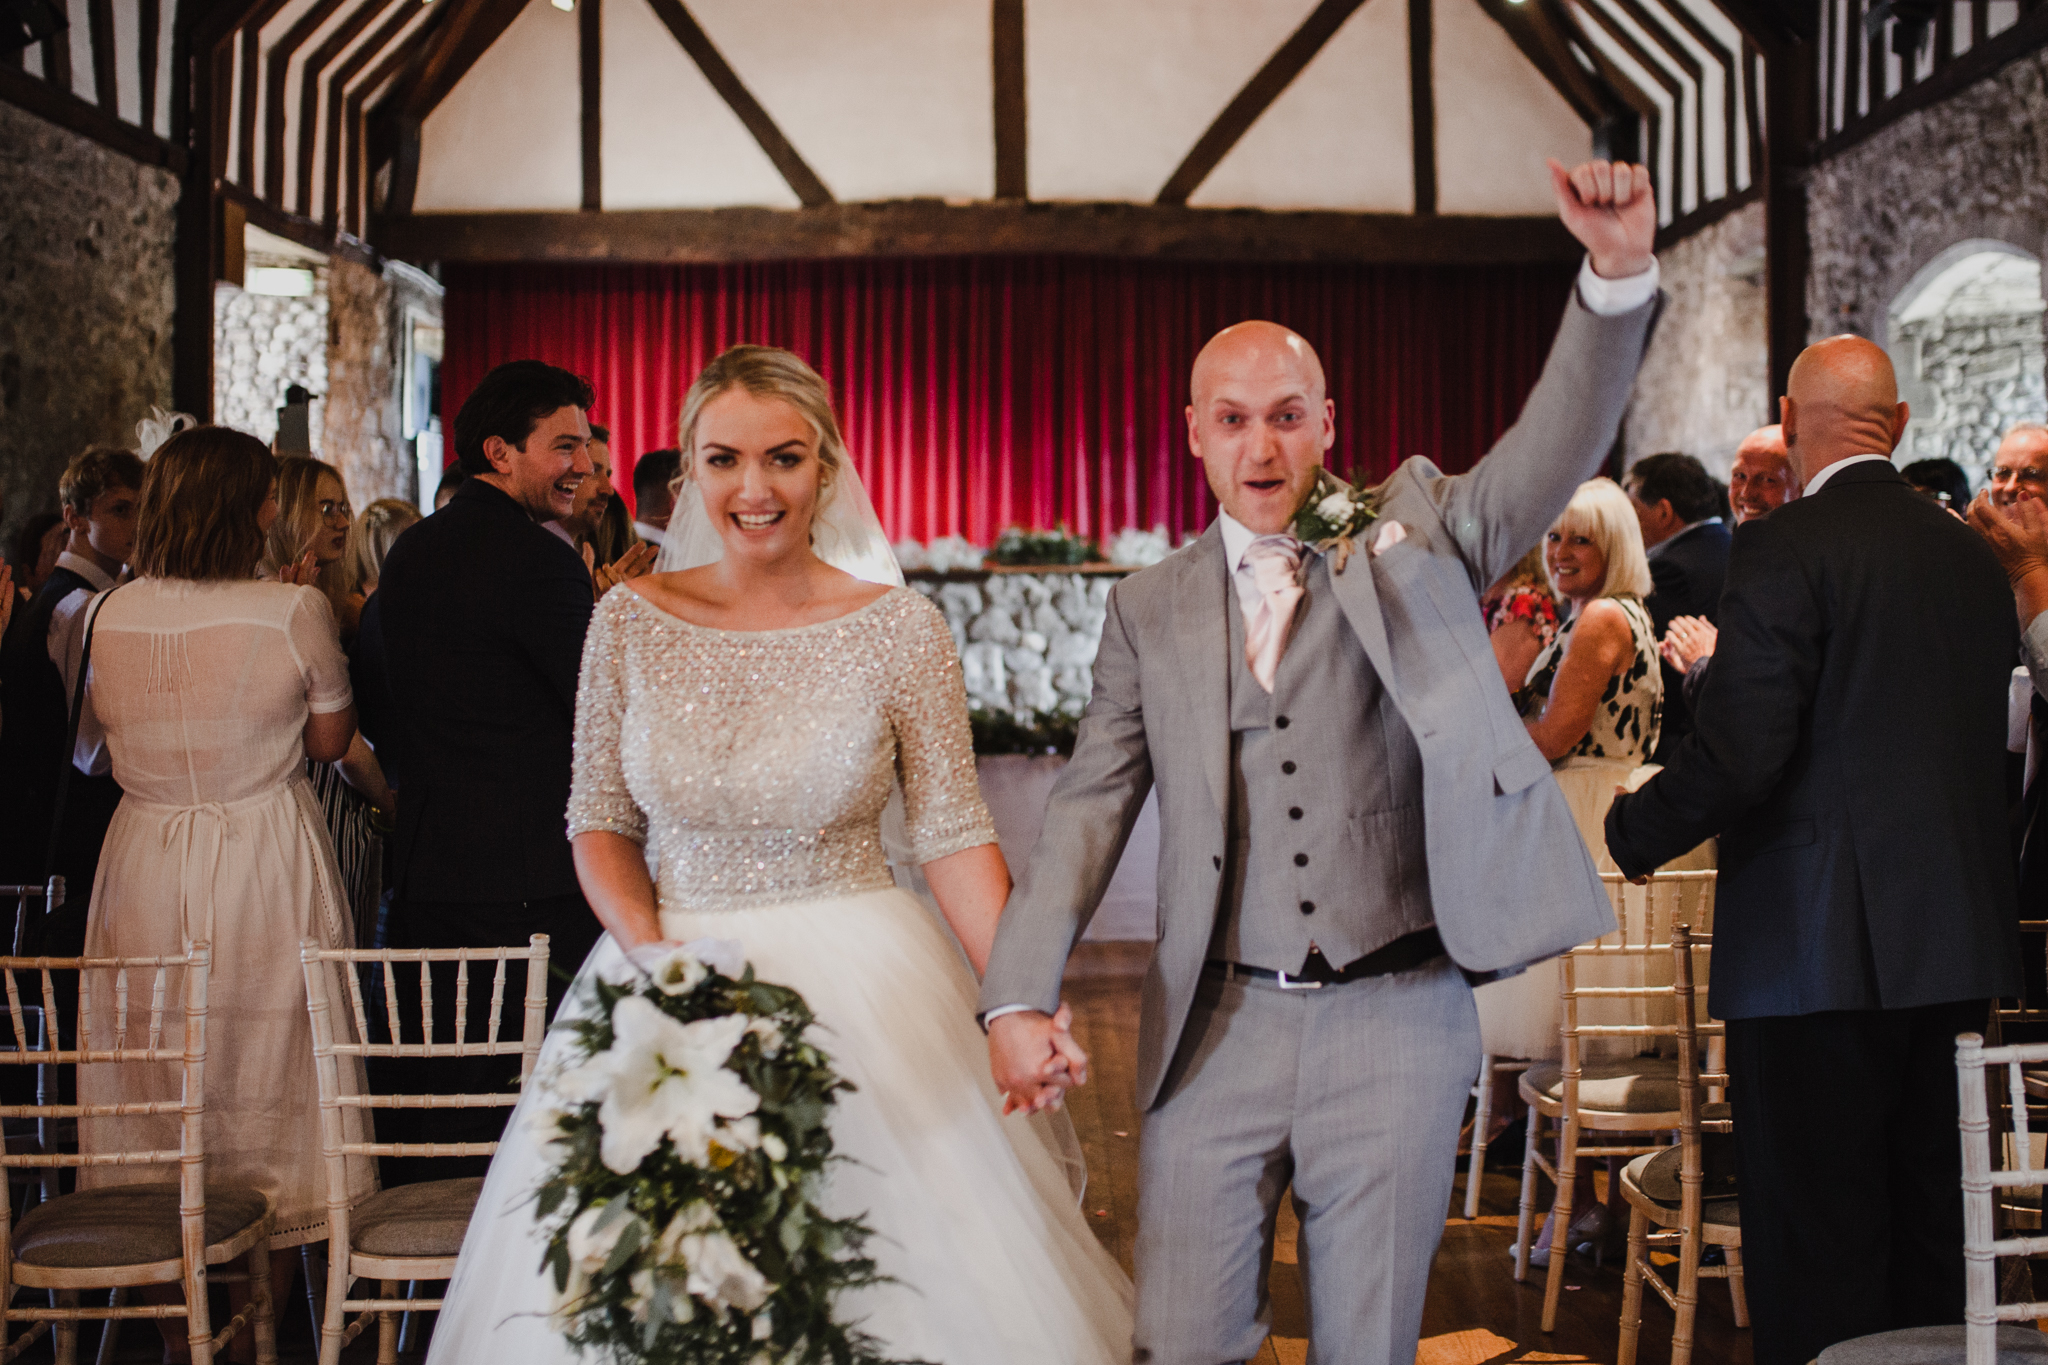 Very happy bride and groom celebrating as they walk down the aisle together